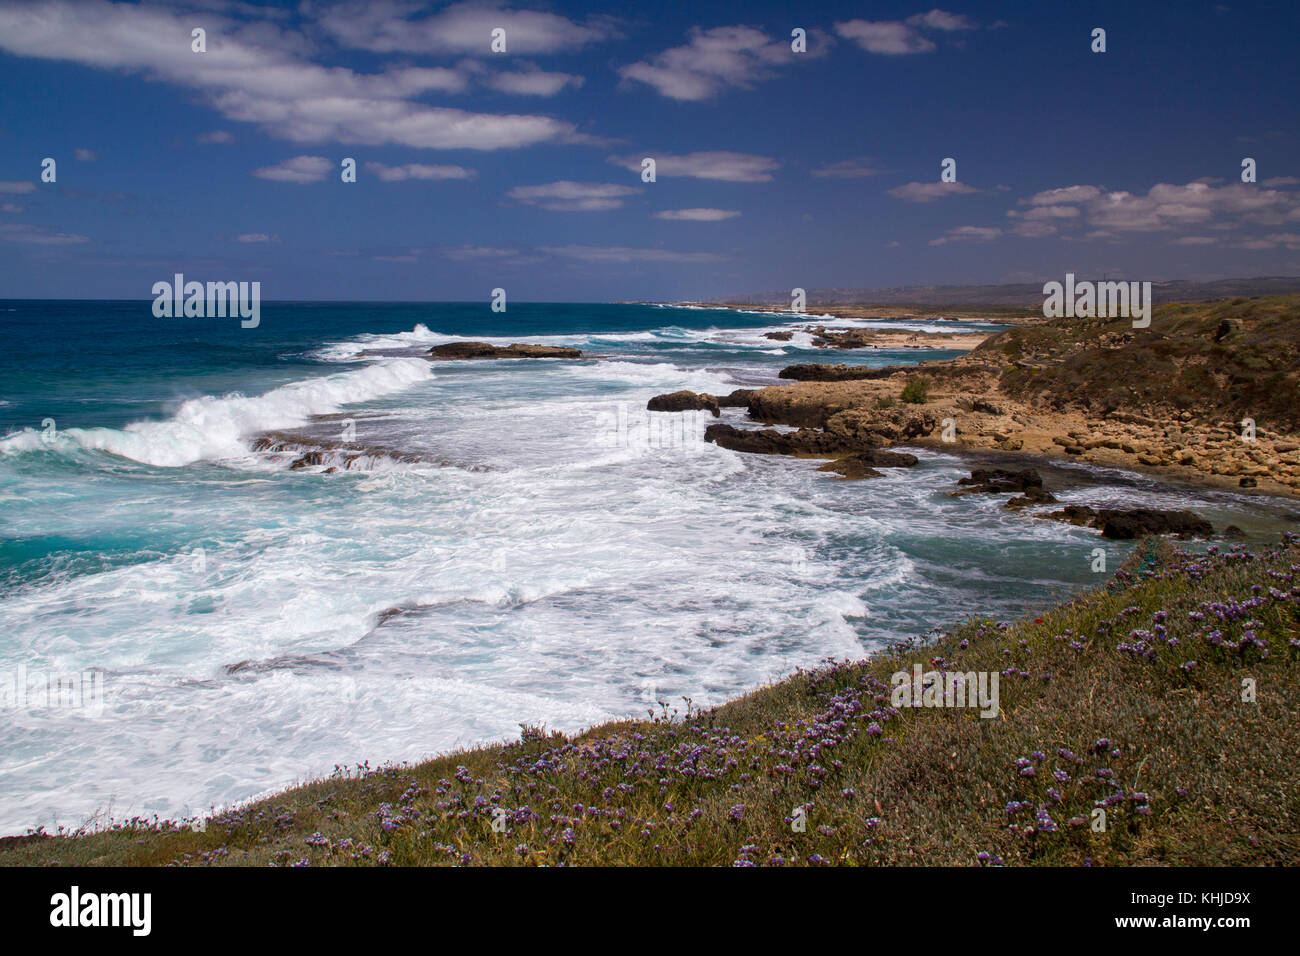 View to Mediterranean sea from the coast and Roman period Ruins.Dor Coast Israel - Stock Image